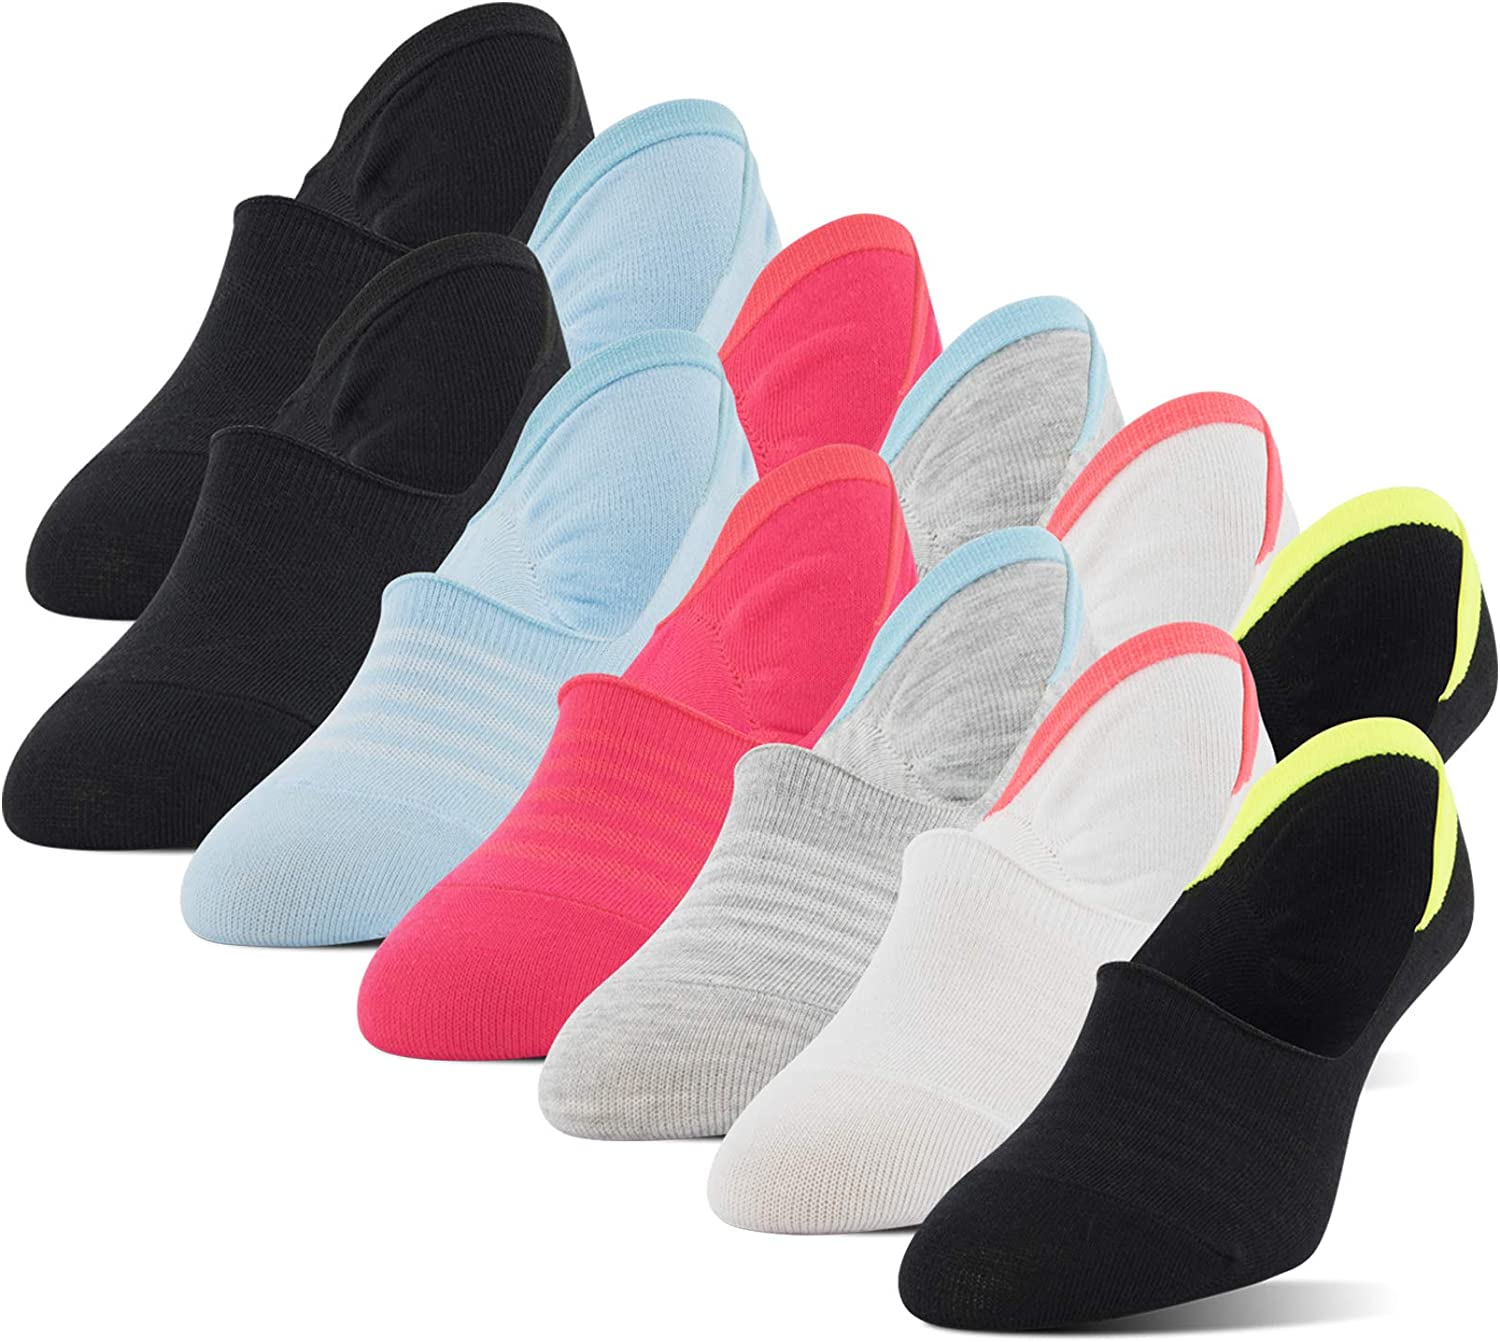 Shoe Size: 5-10 black//white//sport grey//pink//blue 12 Pairs PEDS Womens Mid Cut Liners with Y-Heel